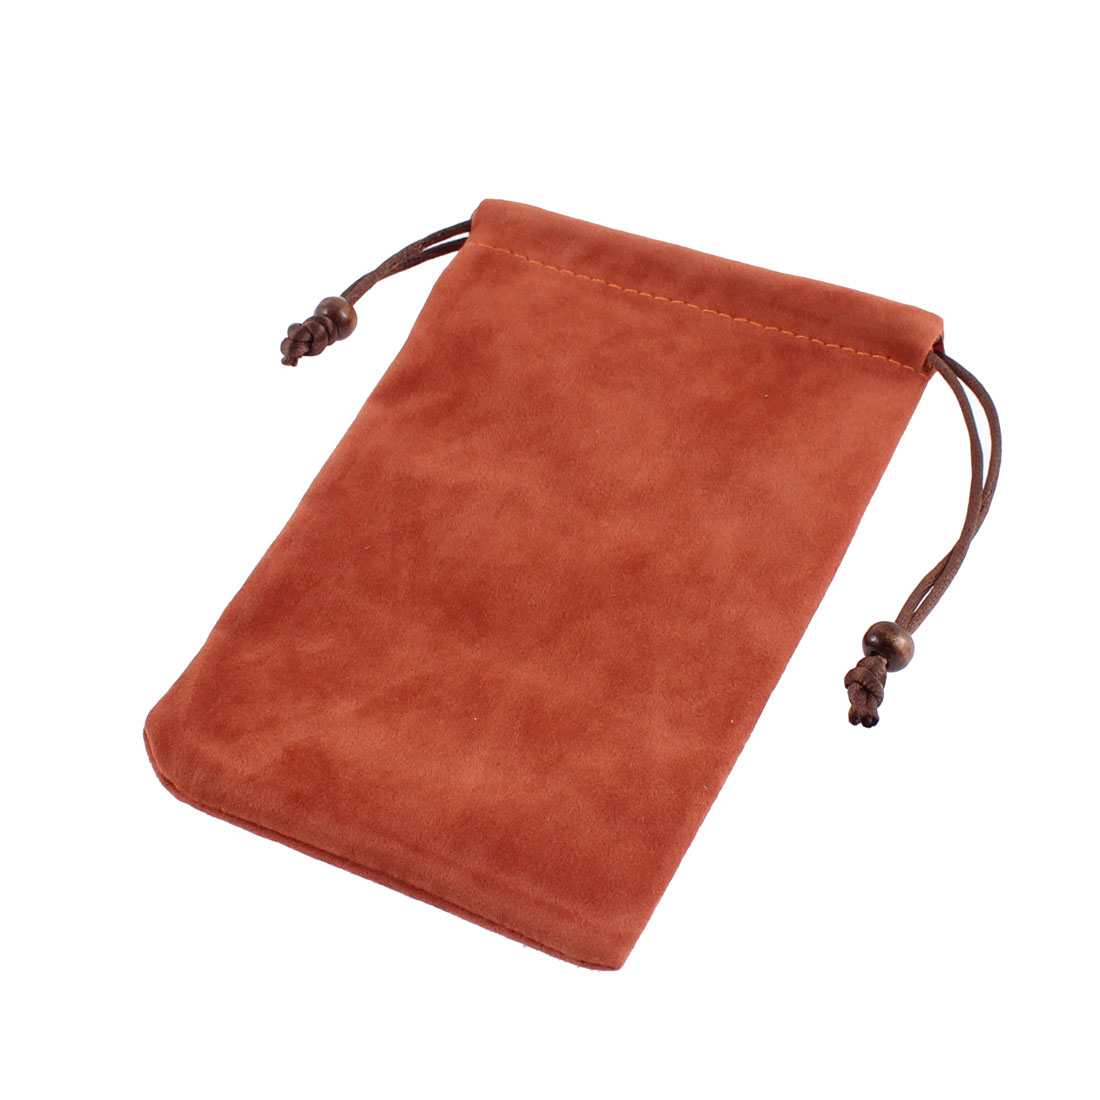 Velvet Cell Phone Smartphone Coin Pouch Holder Bag Brown 15.5 x 9.5cm